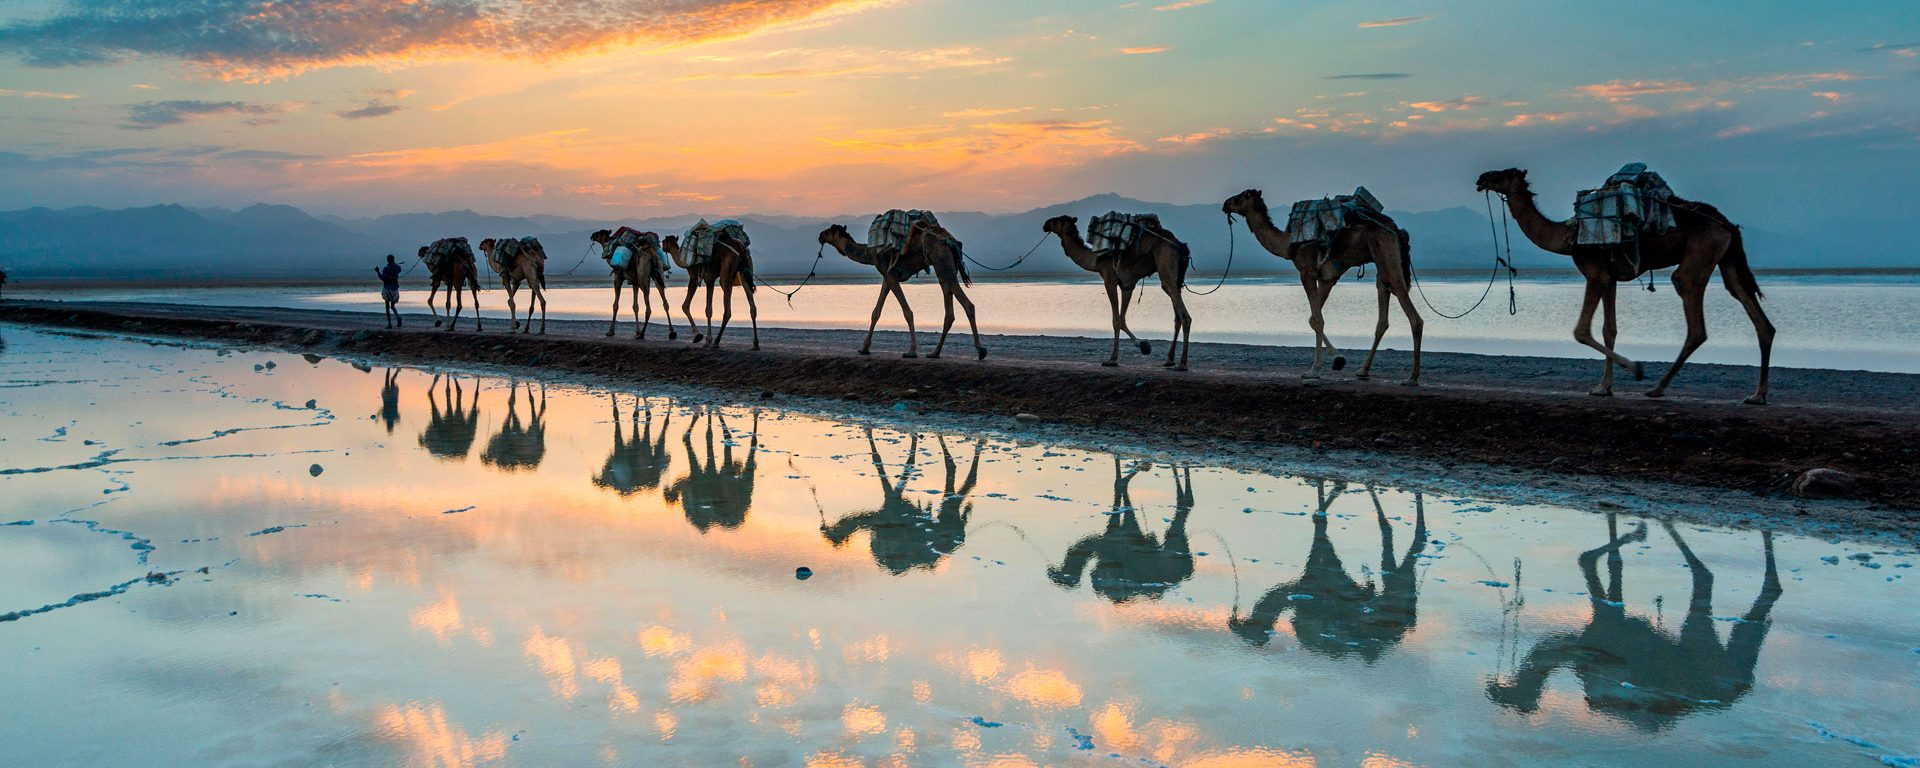 Camels walking through a salt lake in the Danakil Depression, Ethiopia